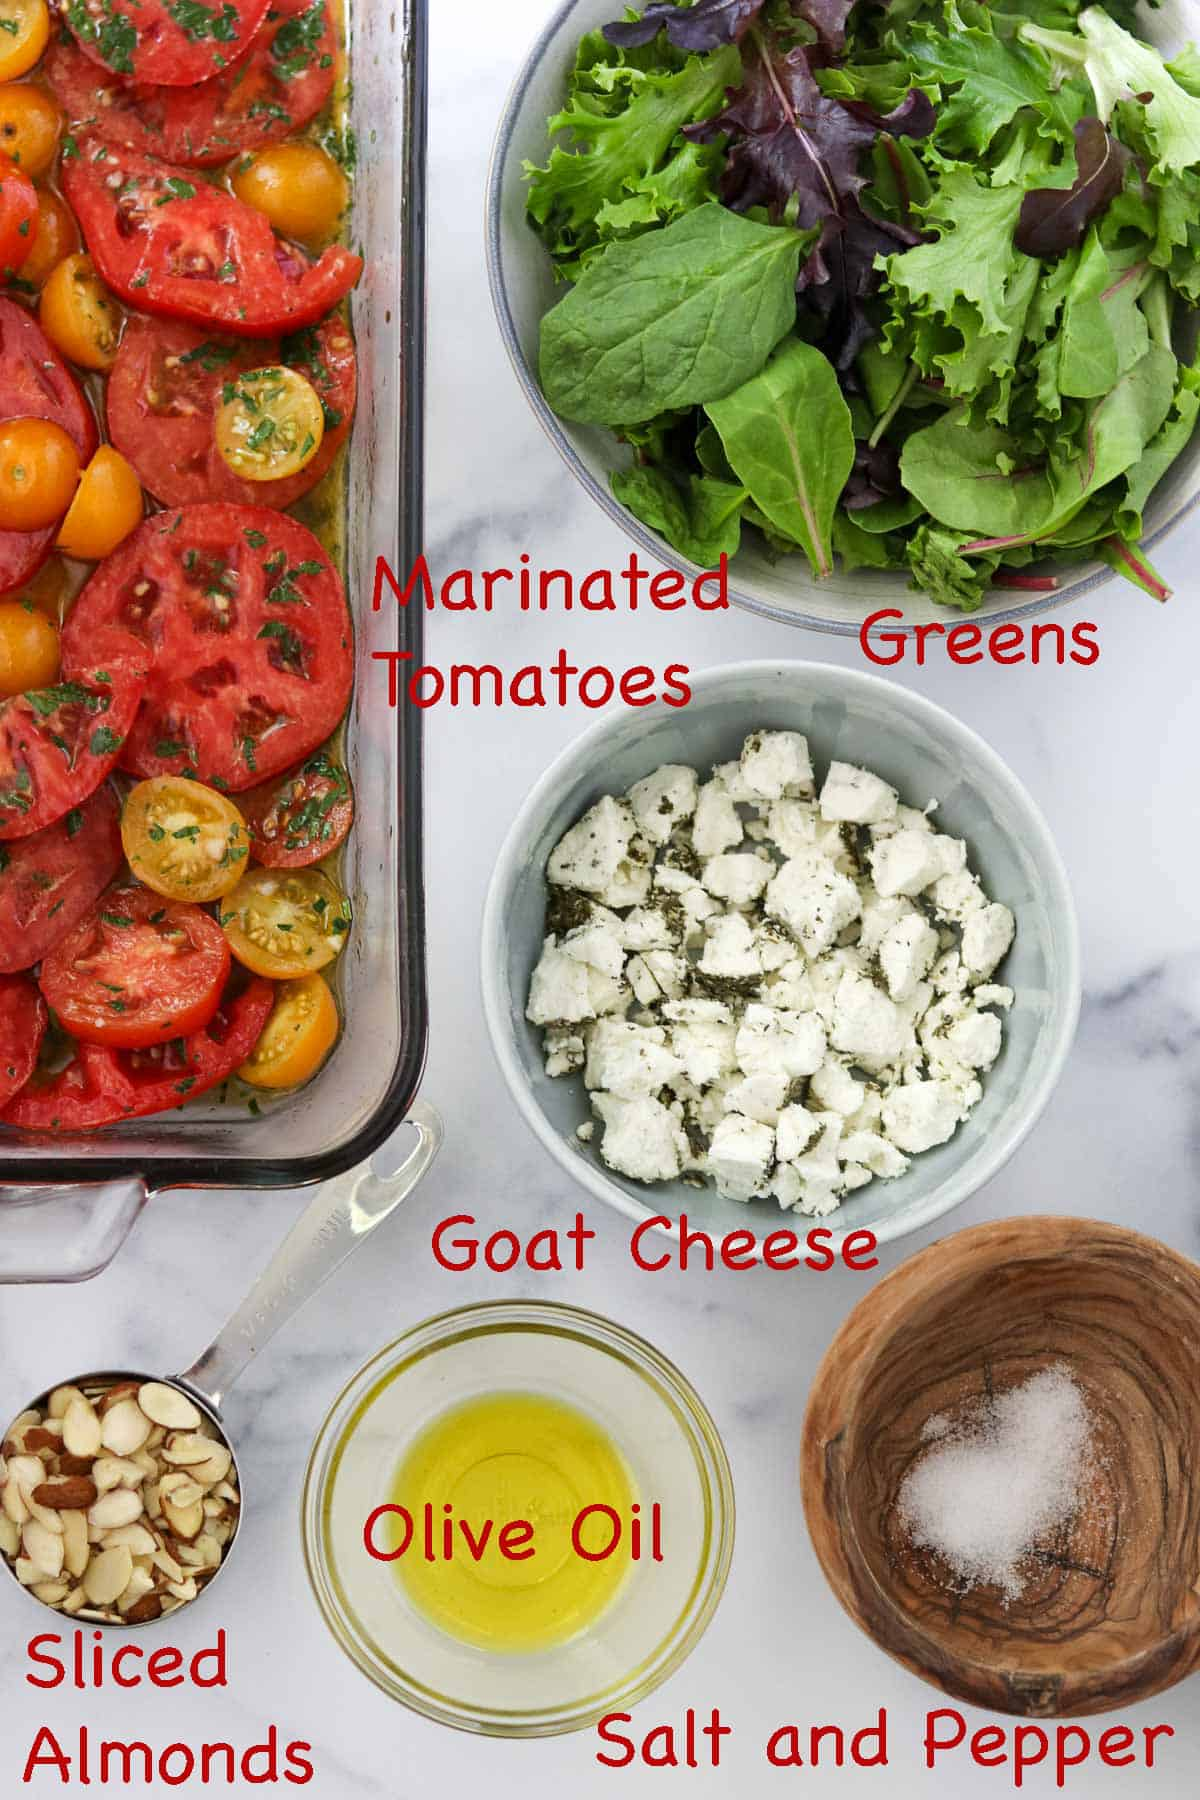 Labeled ingredients for Swedish Marinated Tomato and Goat Cheese Salad